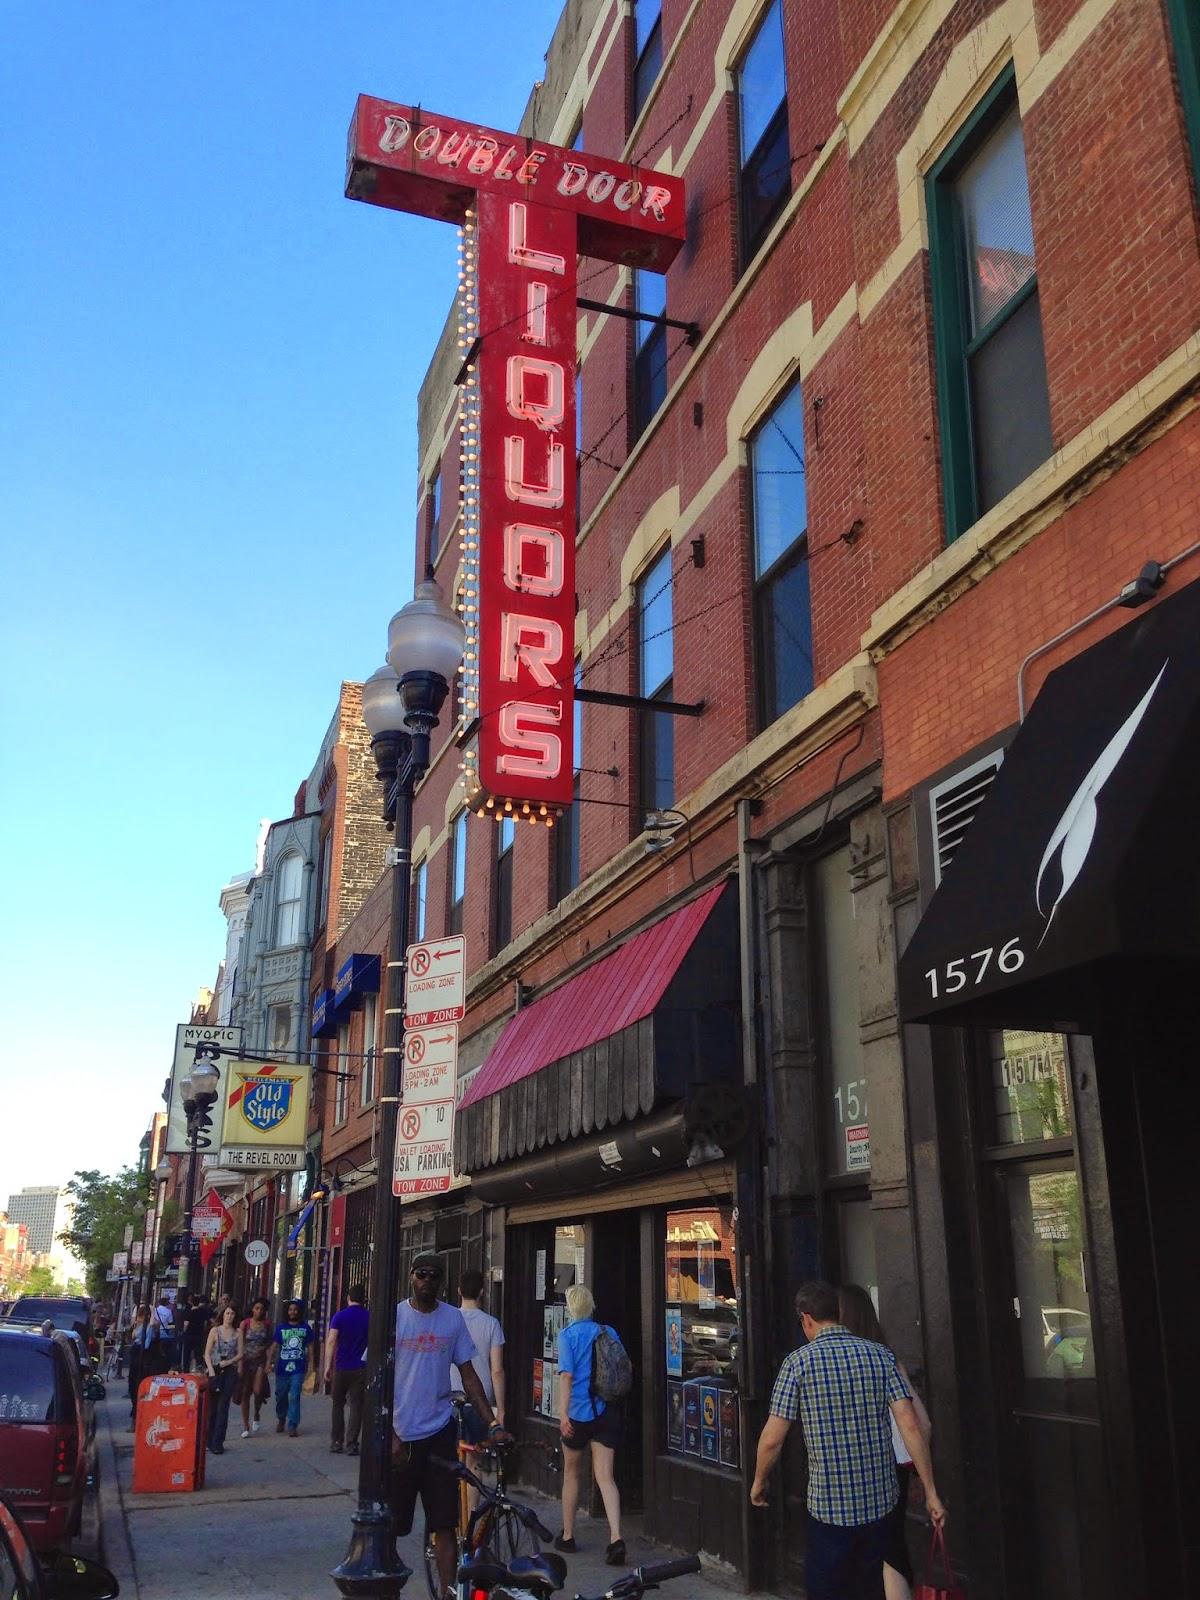 Double Door en Chicago